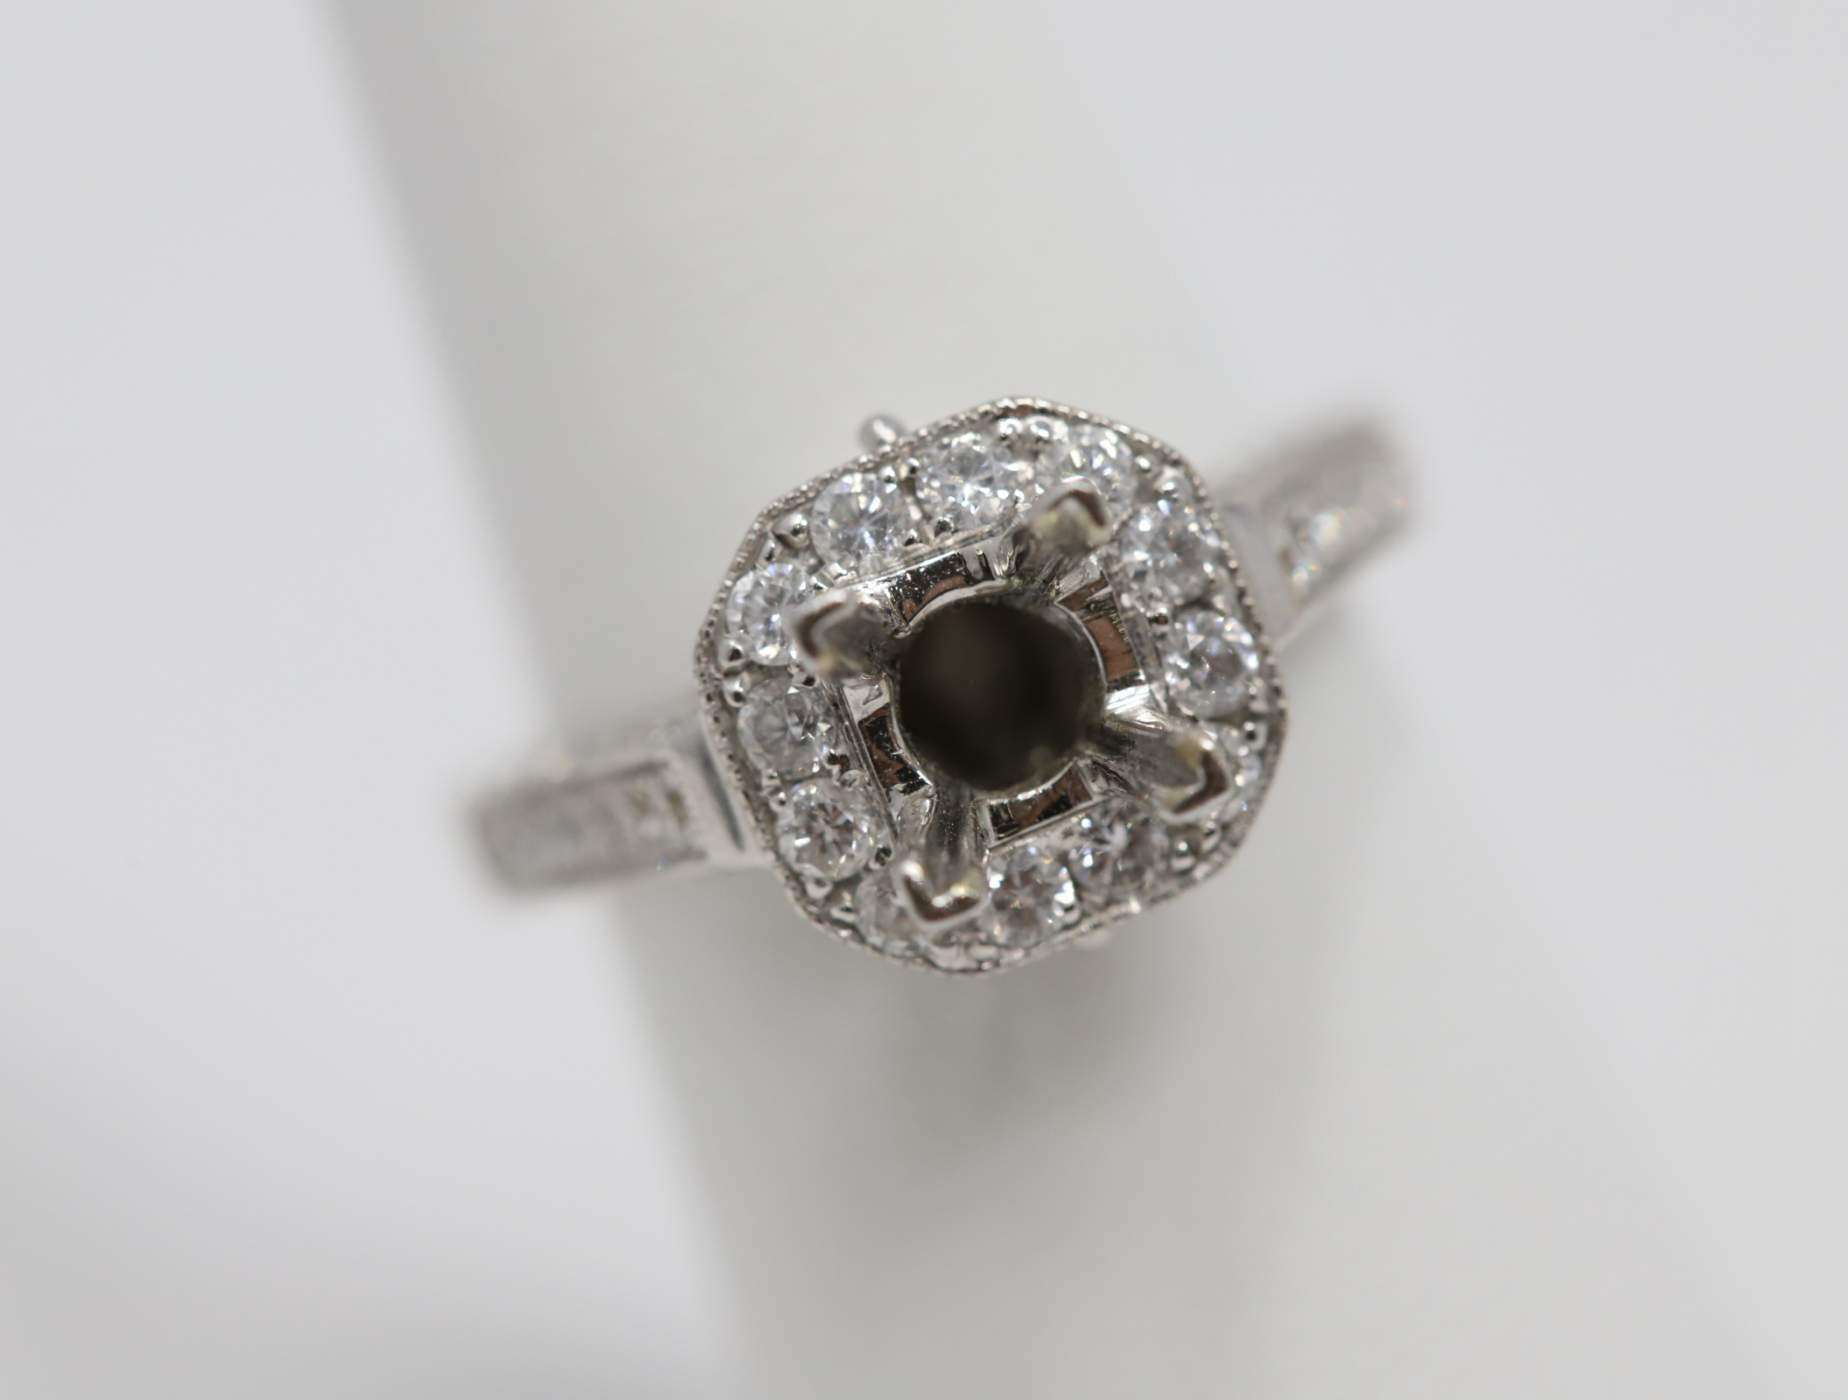 18k White Gold Engagement Ring Mounting